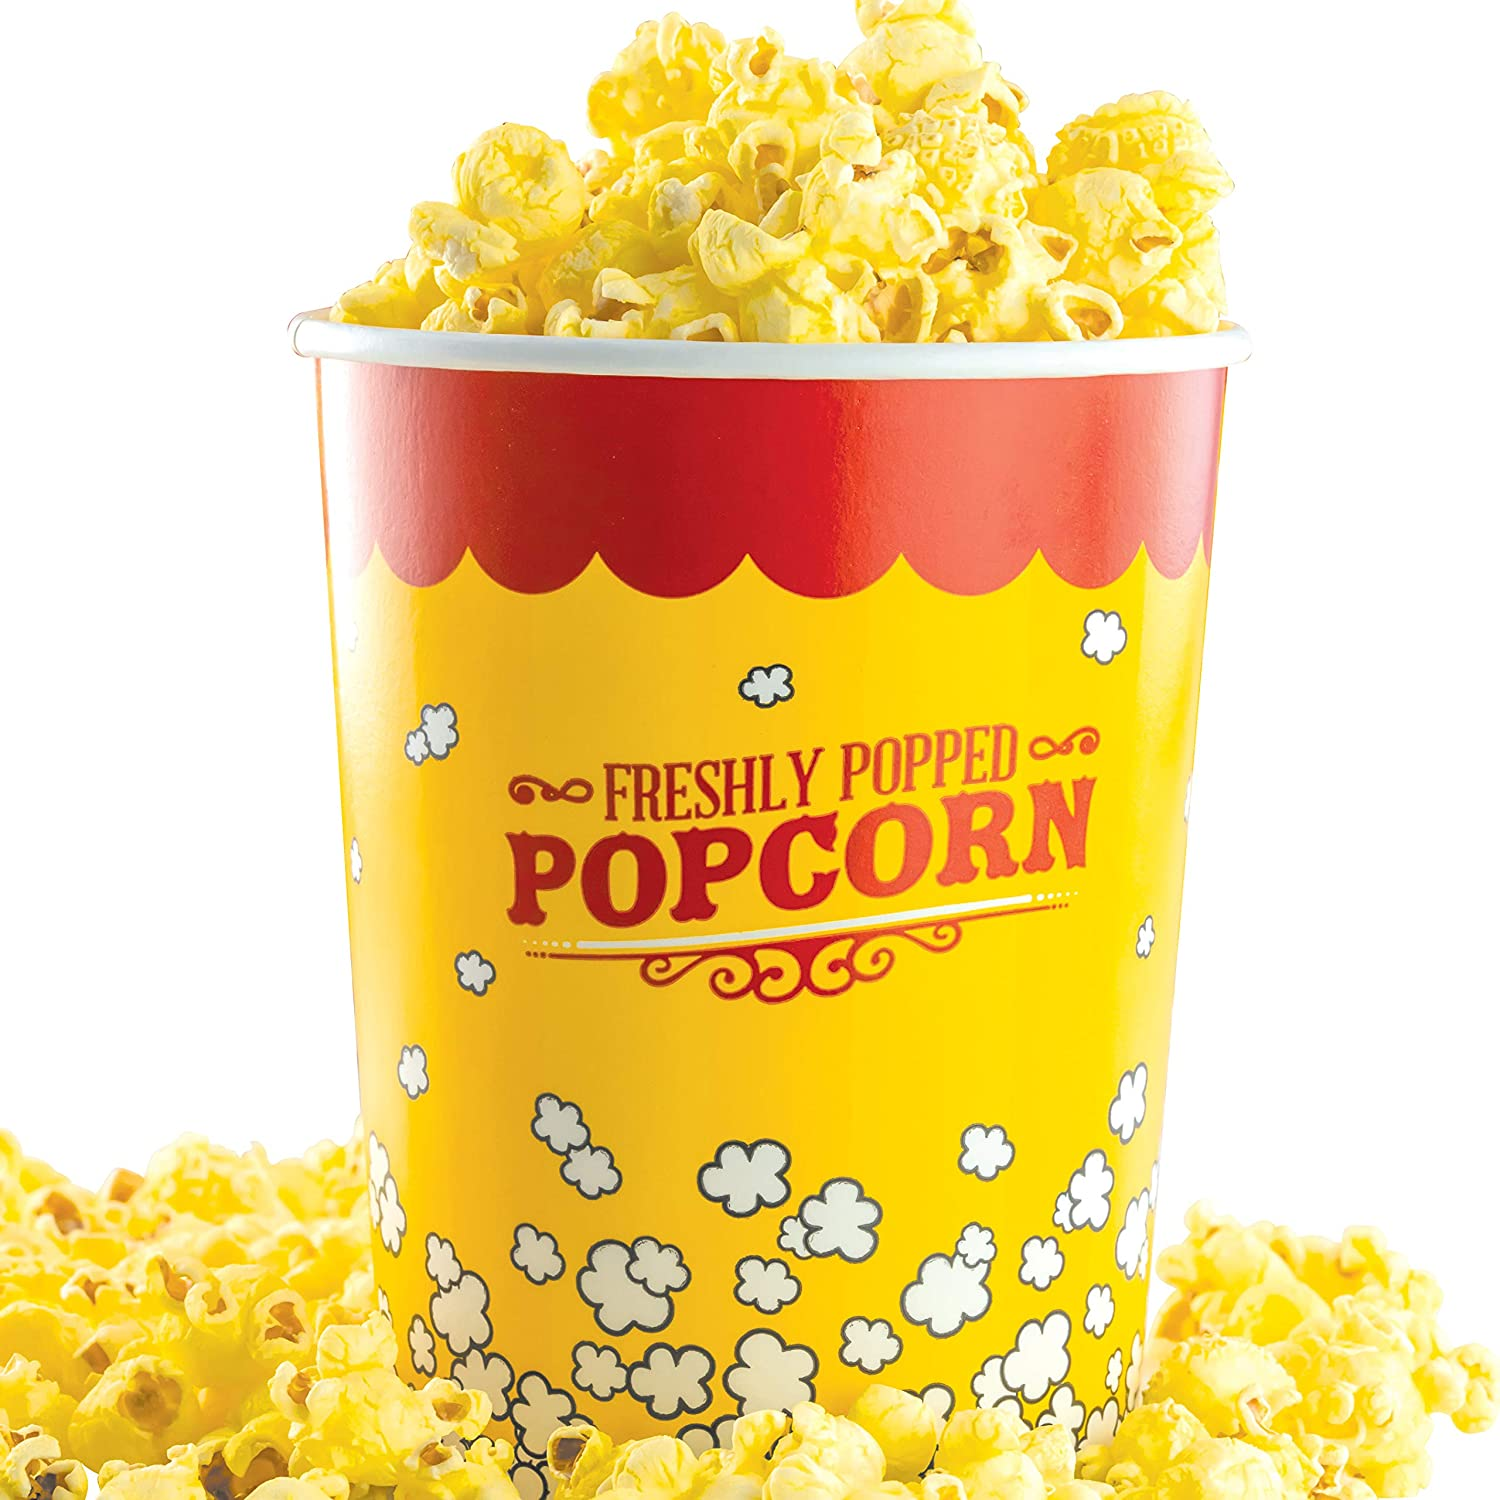 Leakproof, Super Durable 32oz Popcorn Buckets 5 Pack. Grease-Proof Disposable Pop Corn Tubs With Cool Design Are the Ultimate Movie Theater Accessory. Large Containers Great for Any Party or Event